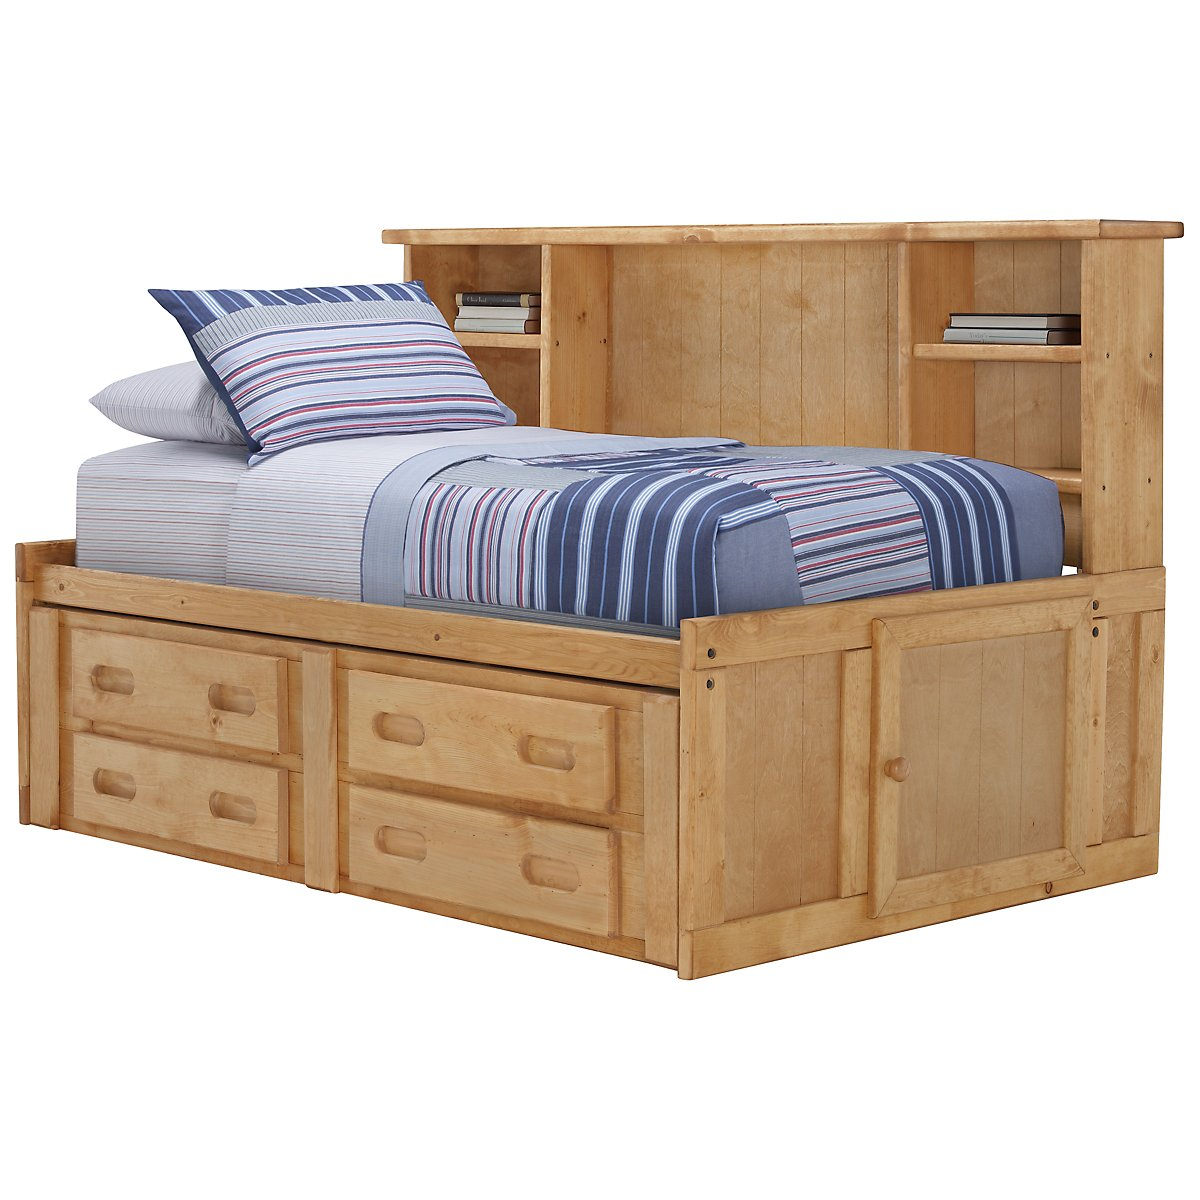 Day beds for teens - Cinnamon Mid Tone Storage Bookcase Daybed